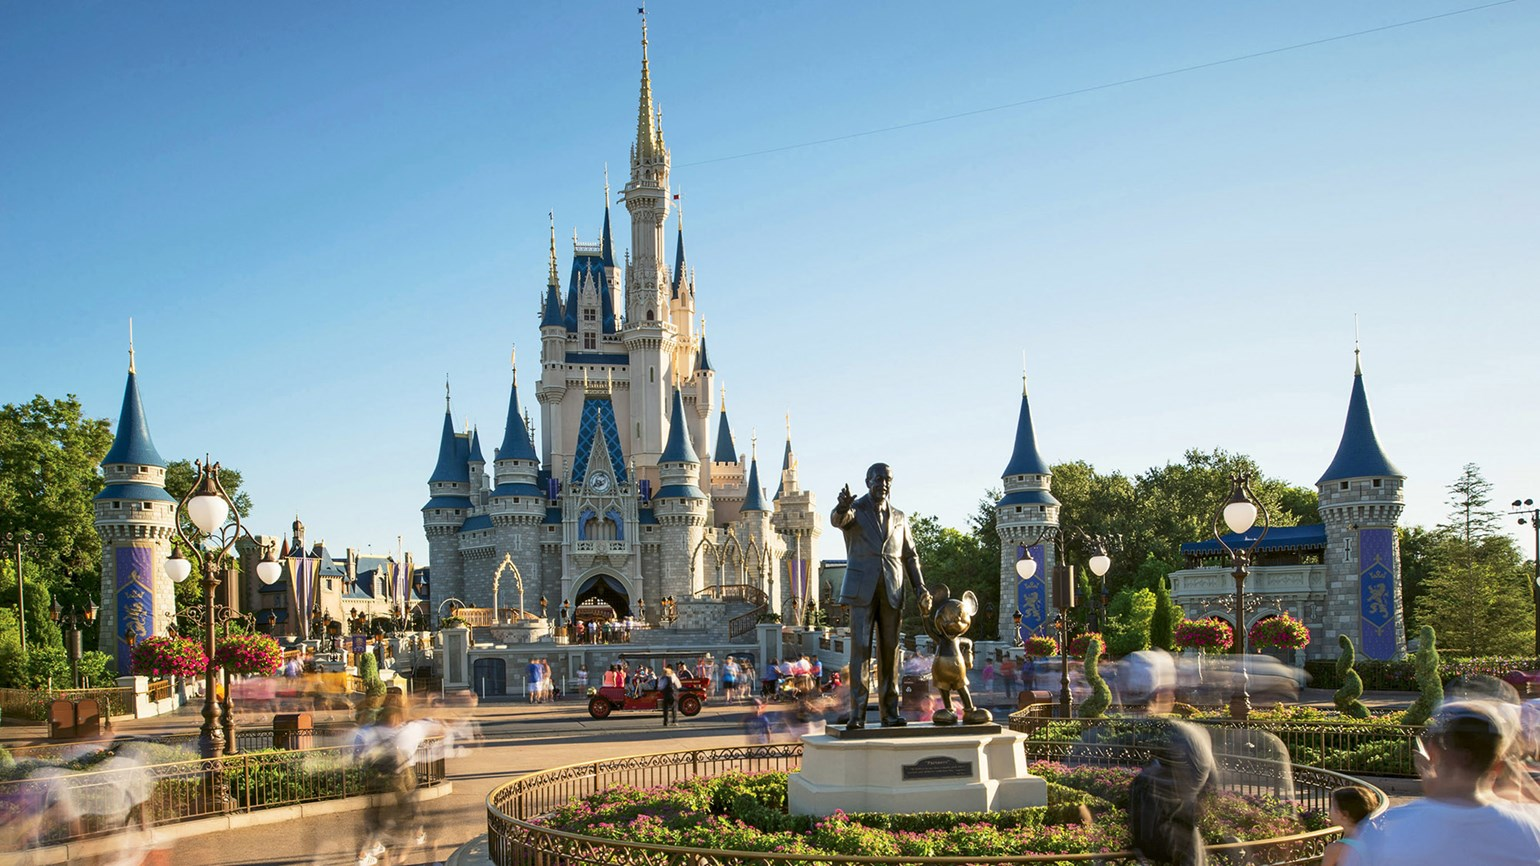 Capacity levels are going up at Walt Disney World